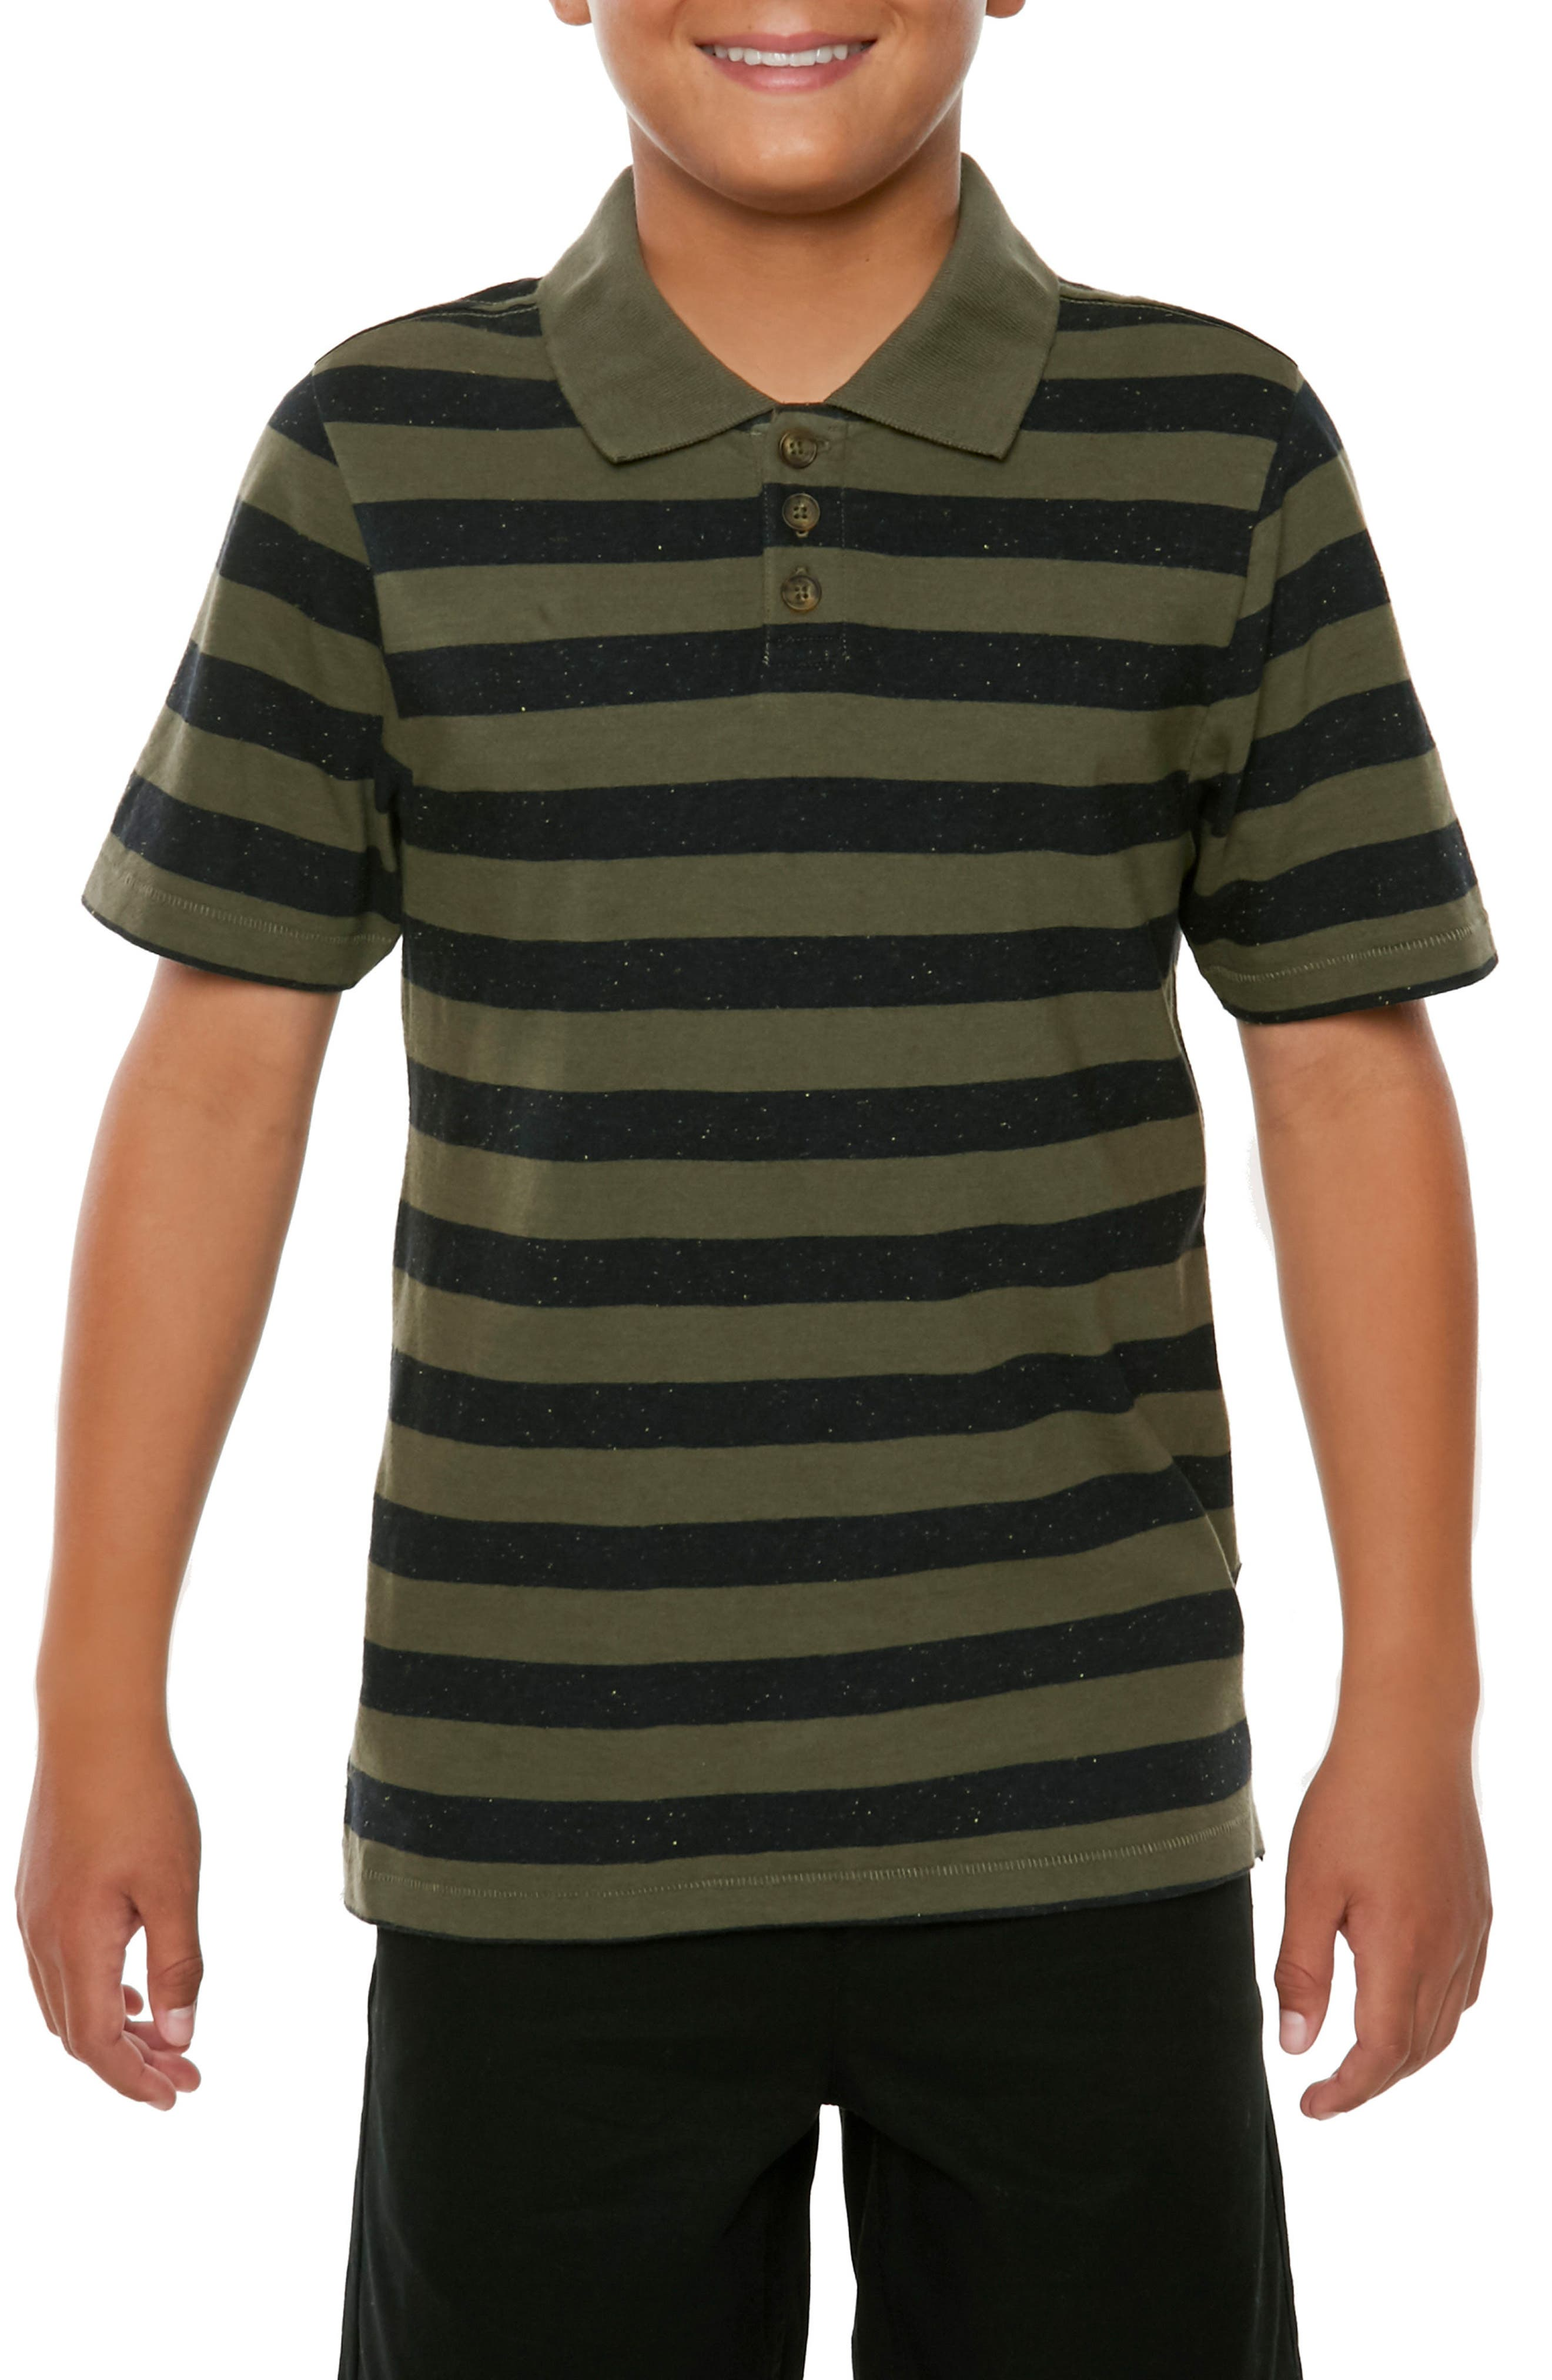 Scoundrel Striped Polo,                             Alternate thumbnail 2, color,                             301